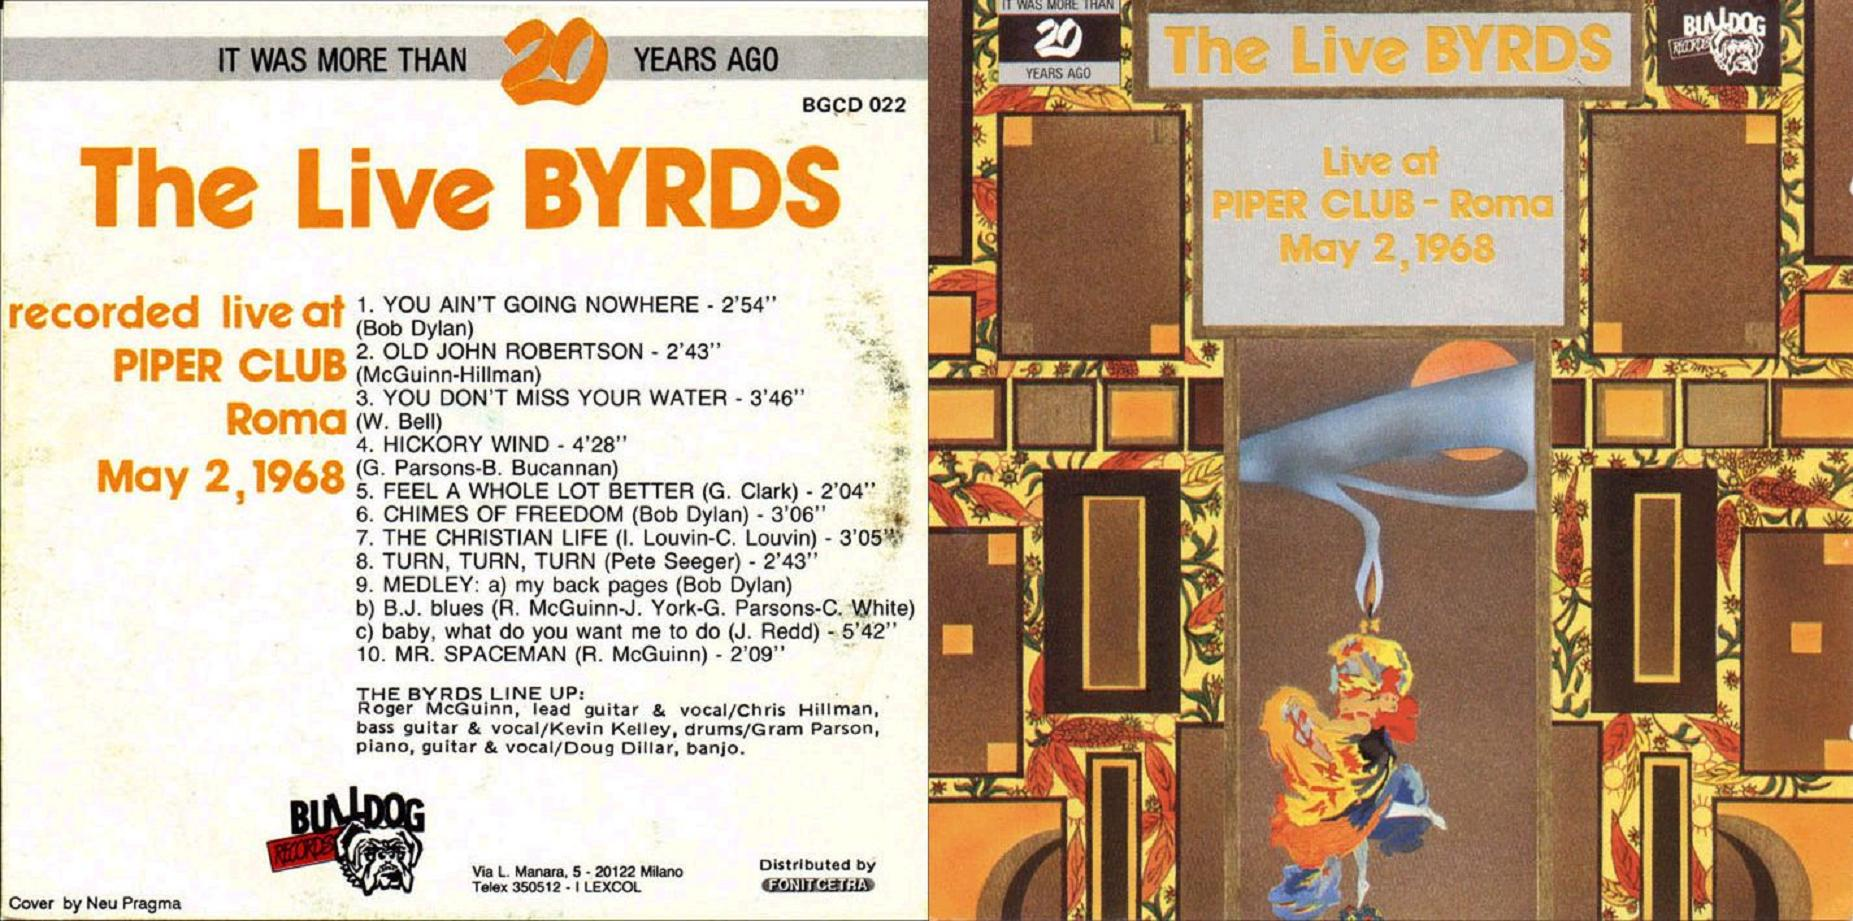 1968-05-07-THE_LIVE_BYRDS-PIPER_CLUB_ROMA-front